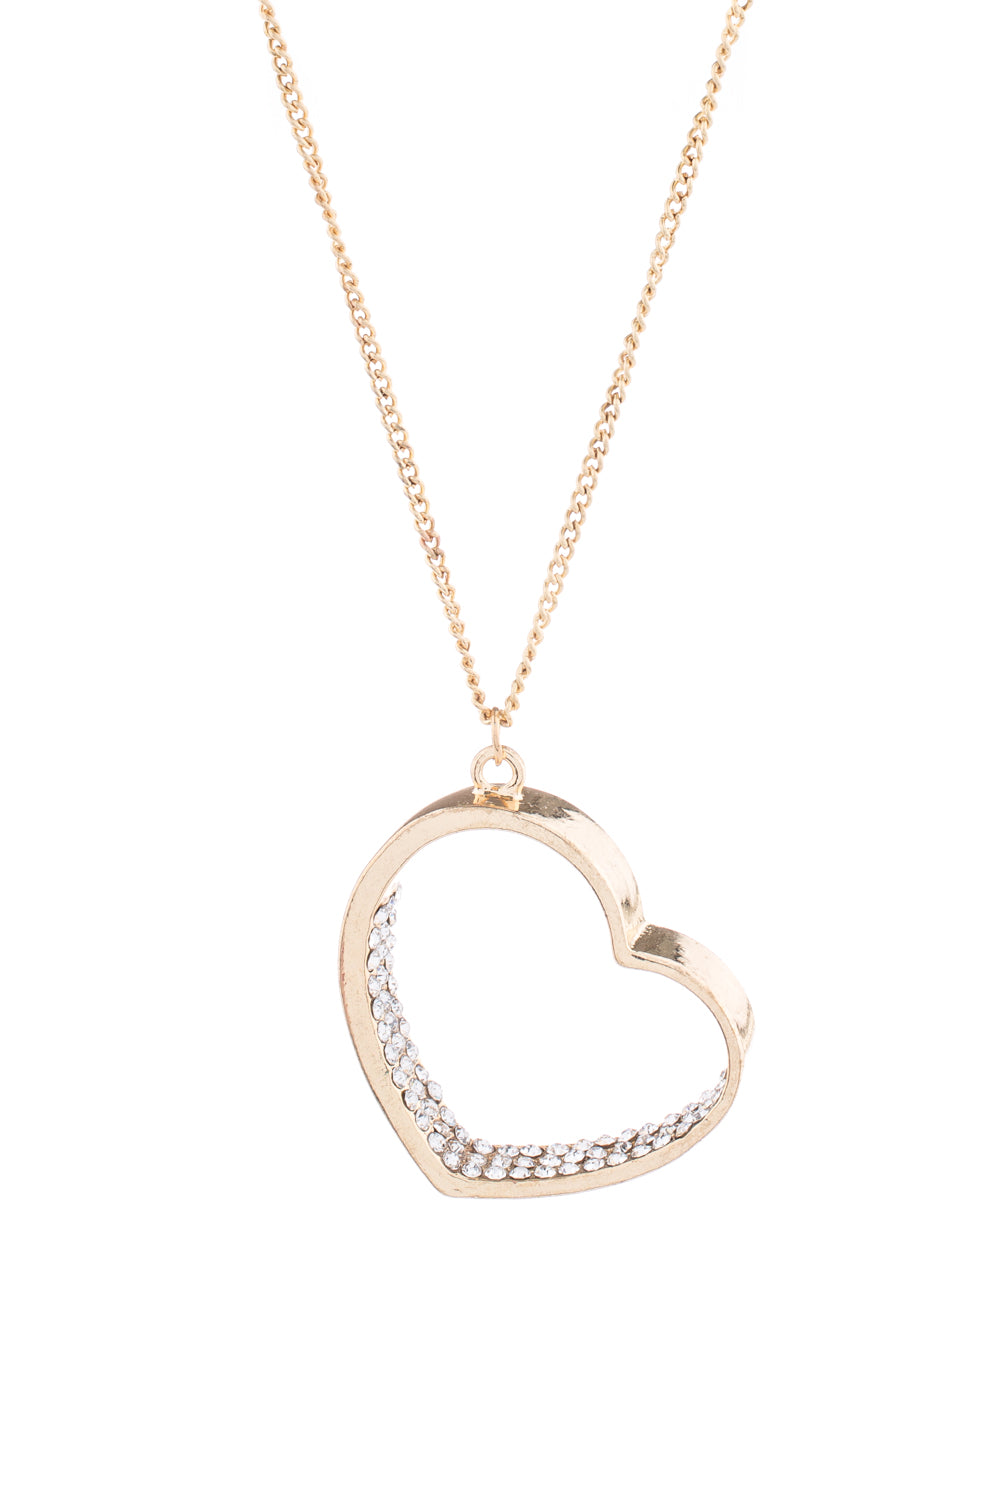 Type 1 All The Love Necklace In Gold